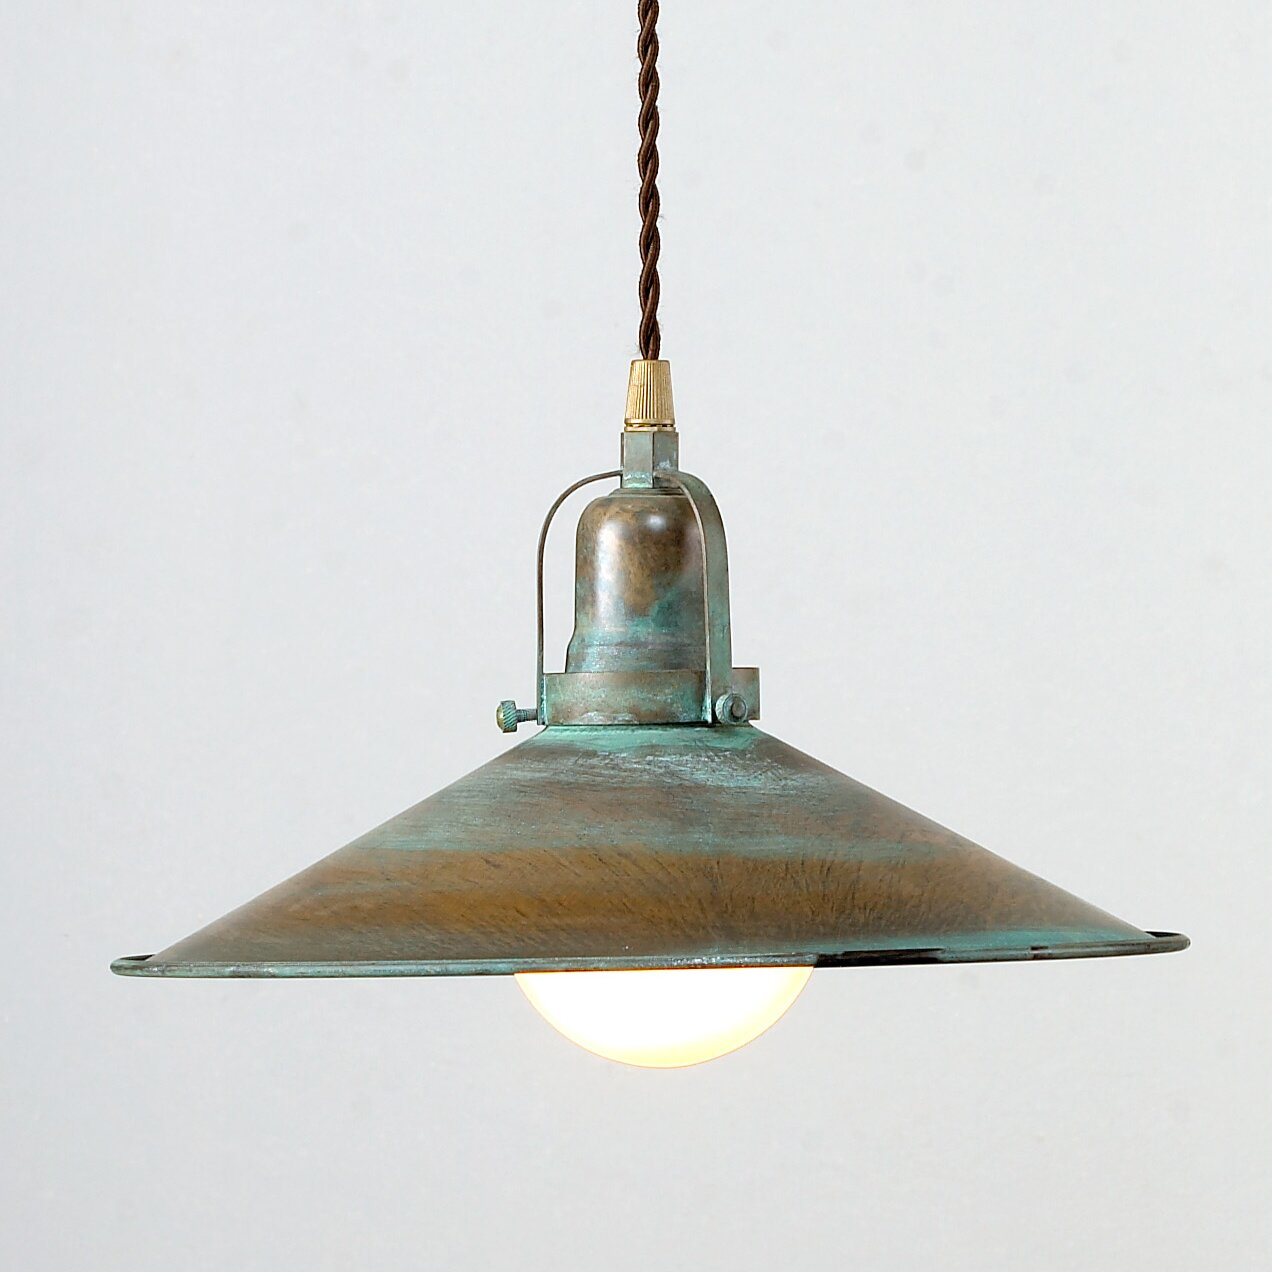 Lustrarte Lighting Rustic D''Avo 1 Light Large Pendant